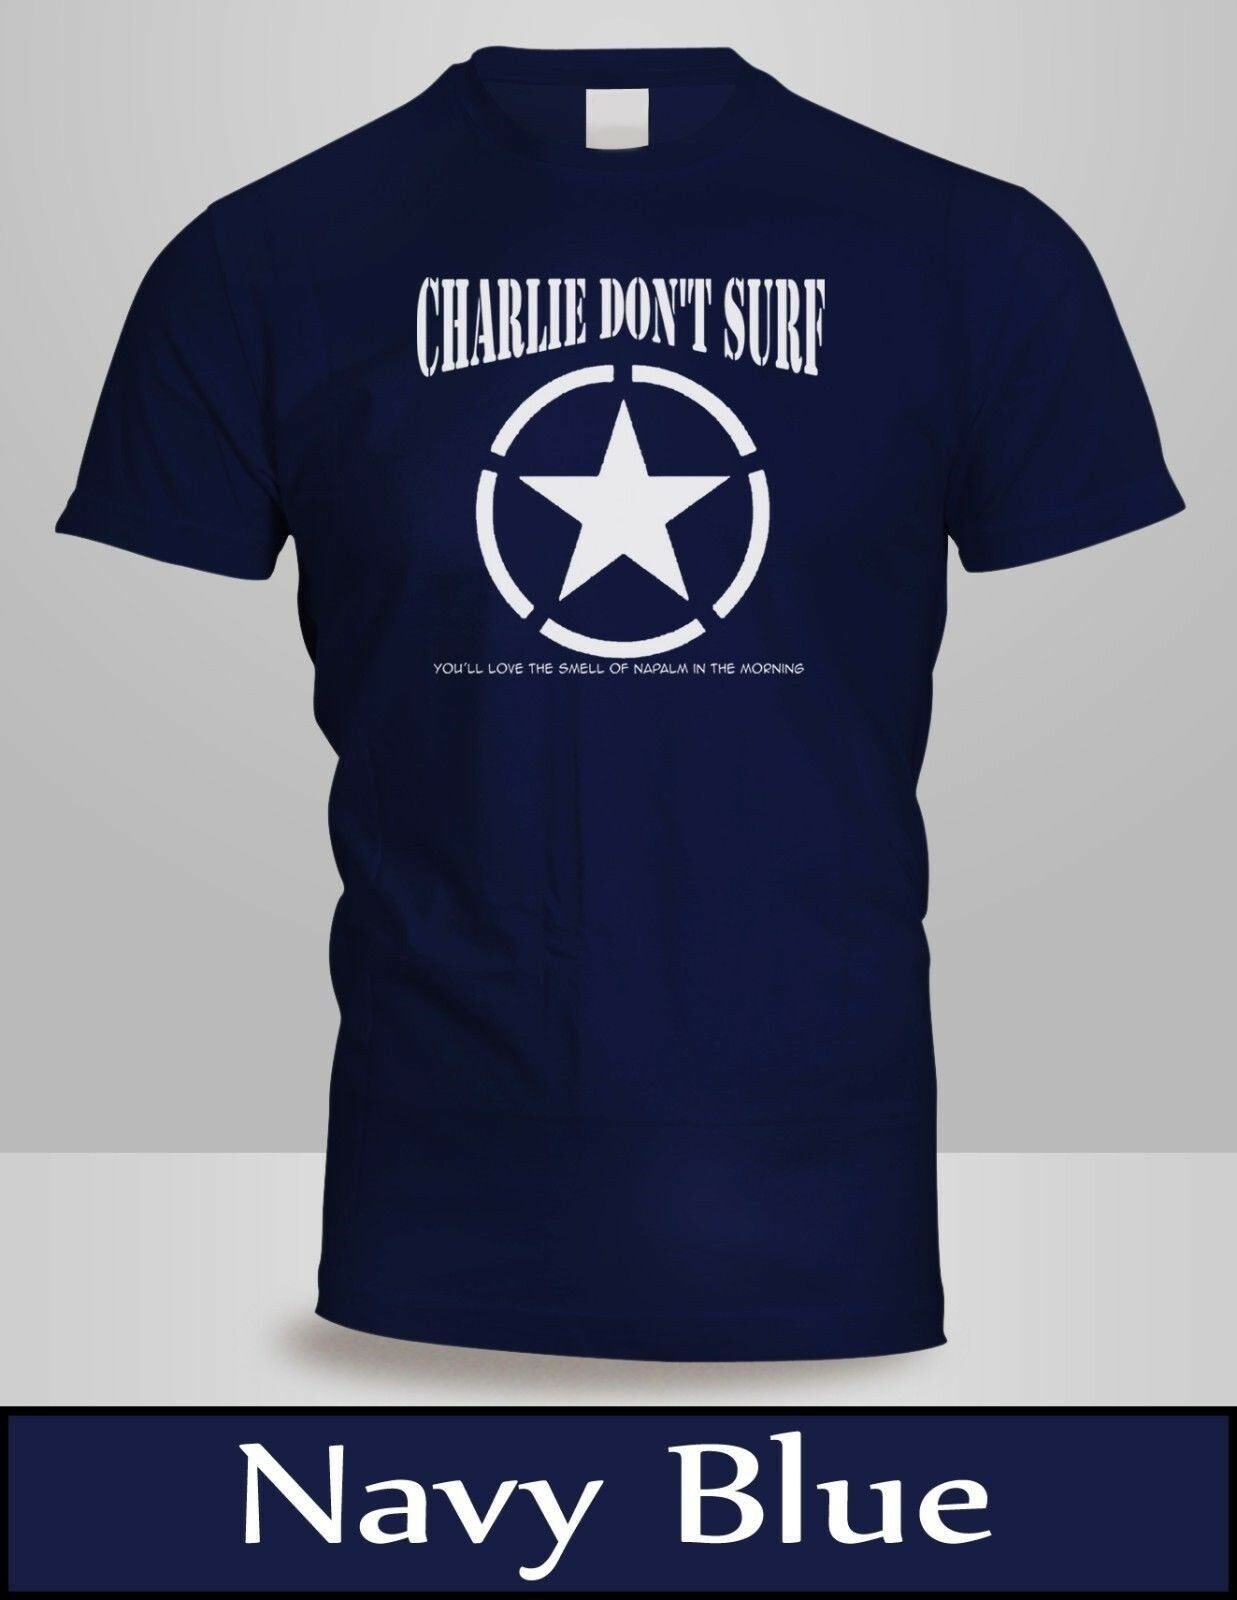 Apocalypse Now, Charlie Don't Surf T-Shirt Mens Navy Blue Cult Movie Shirt 3 image